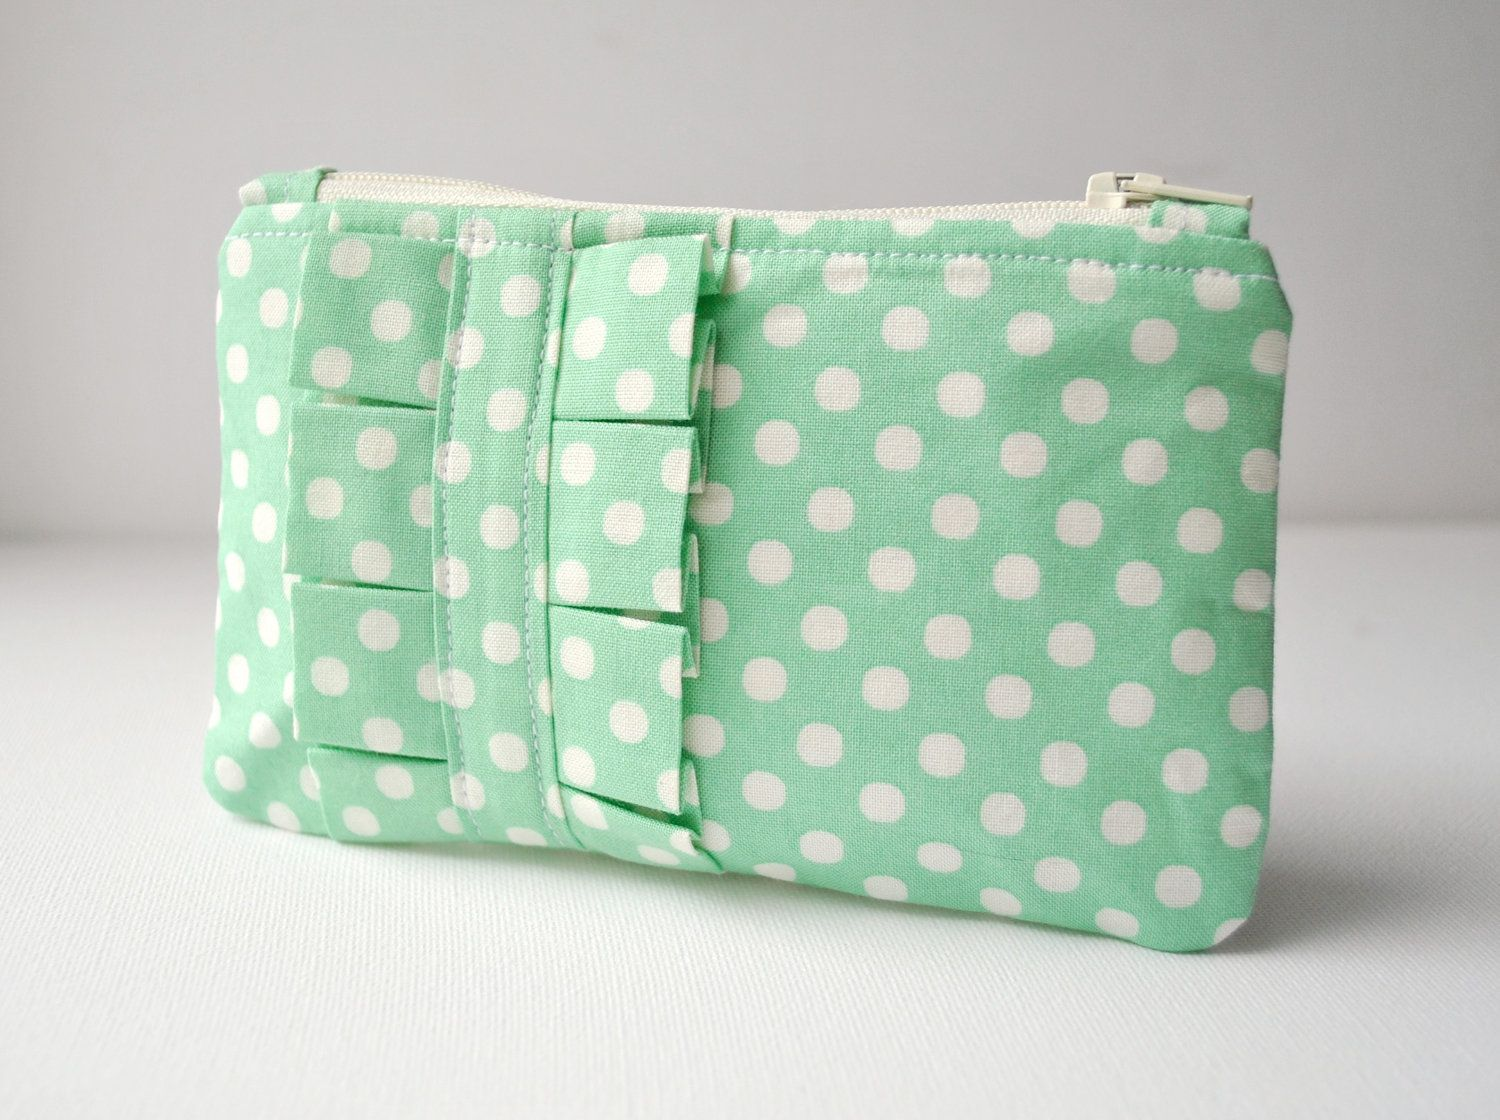 Coin purse wallet polka dot spot in mint green and white